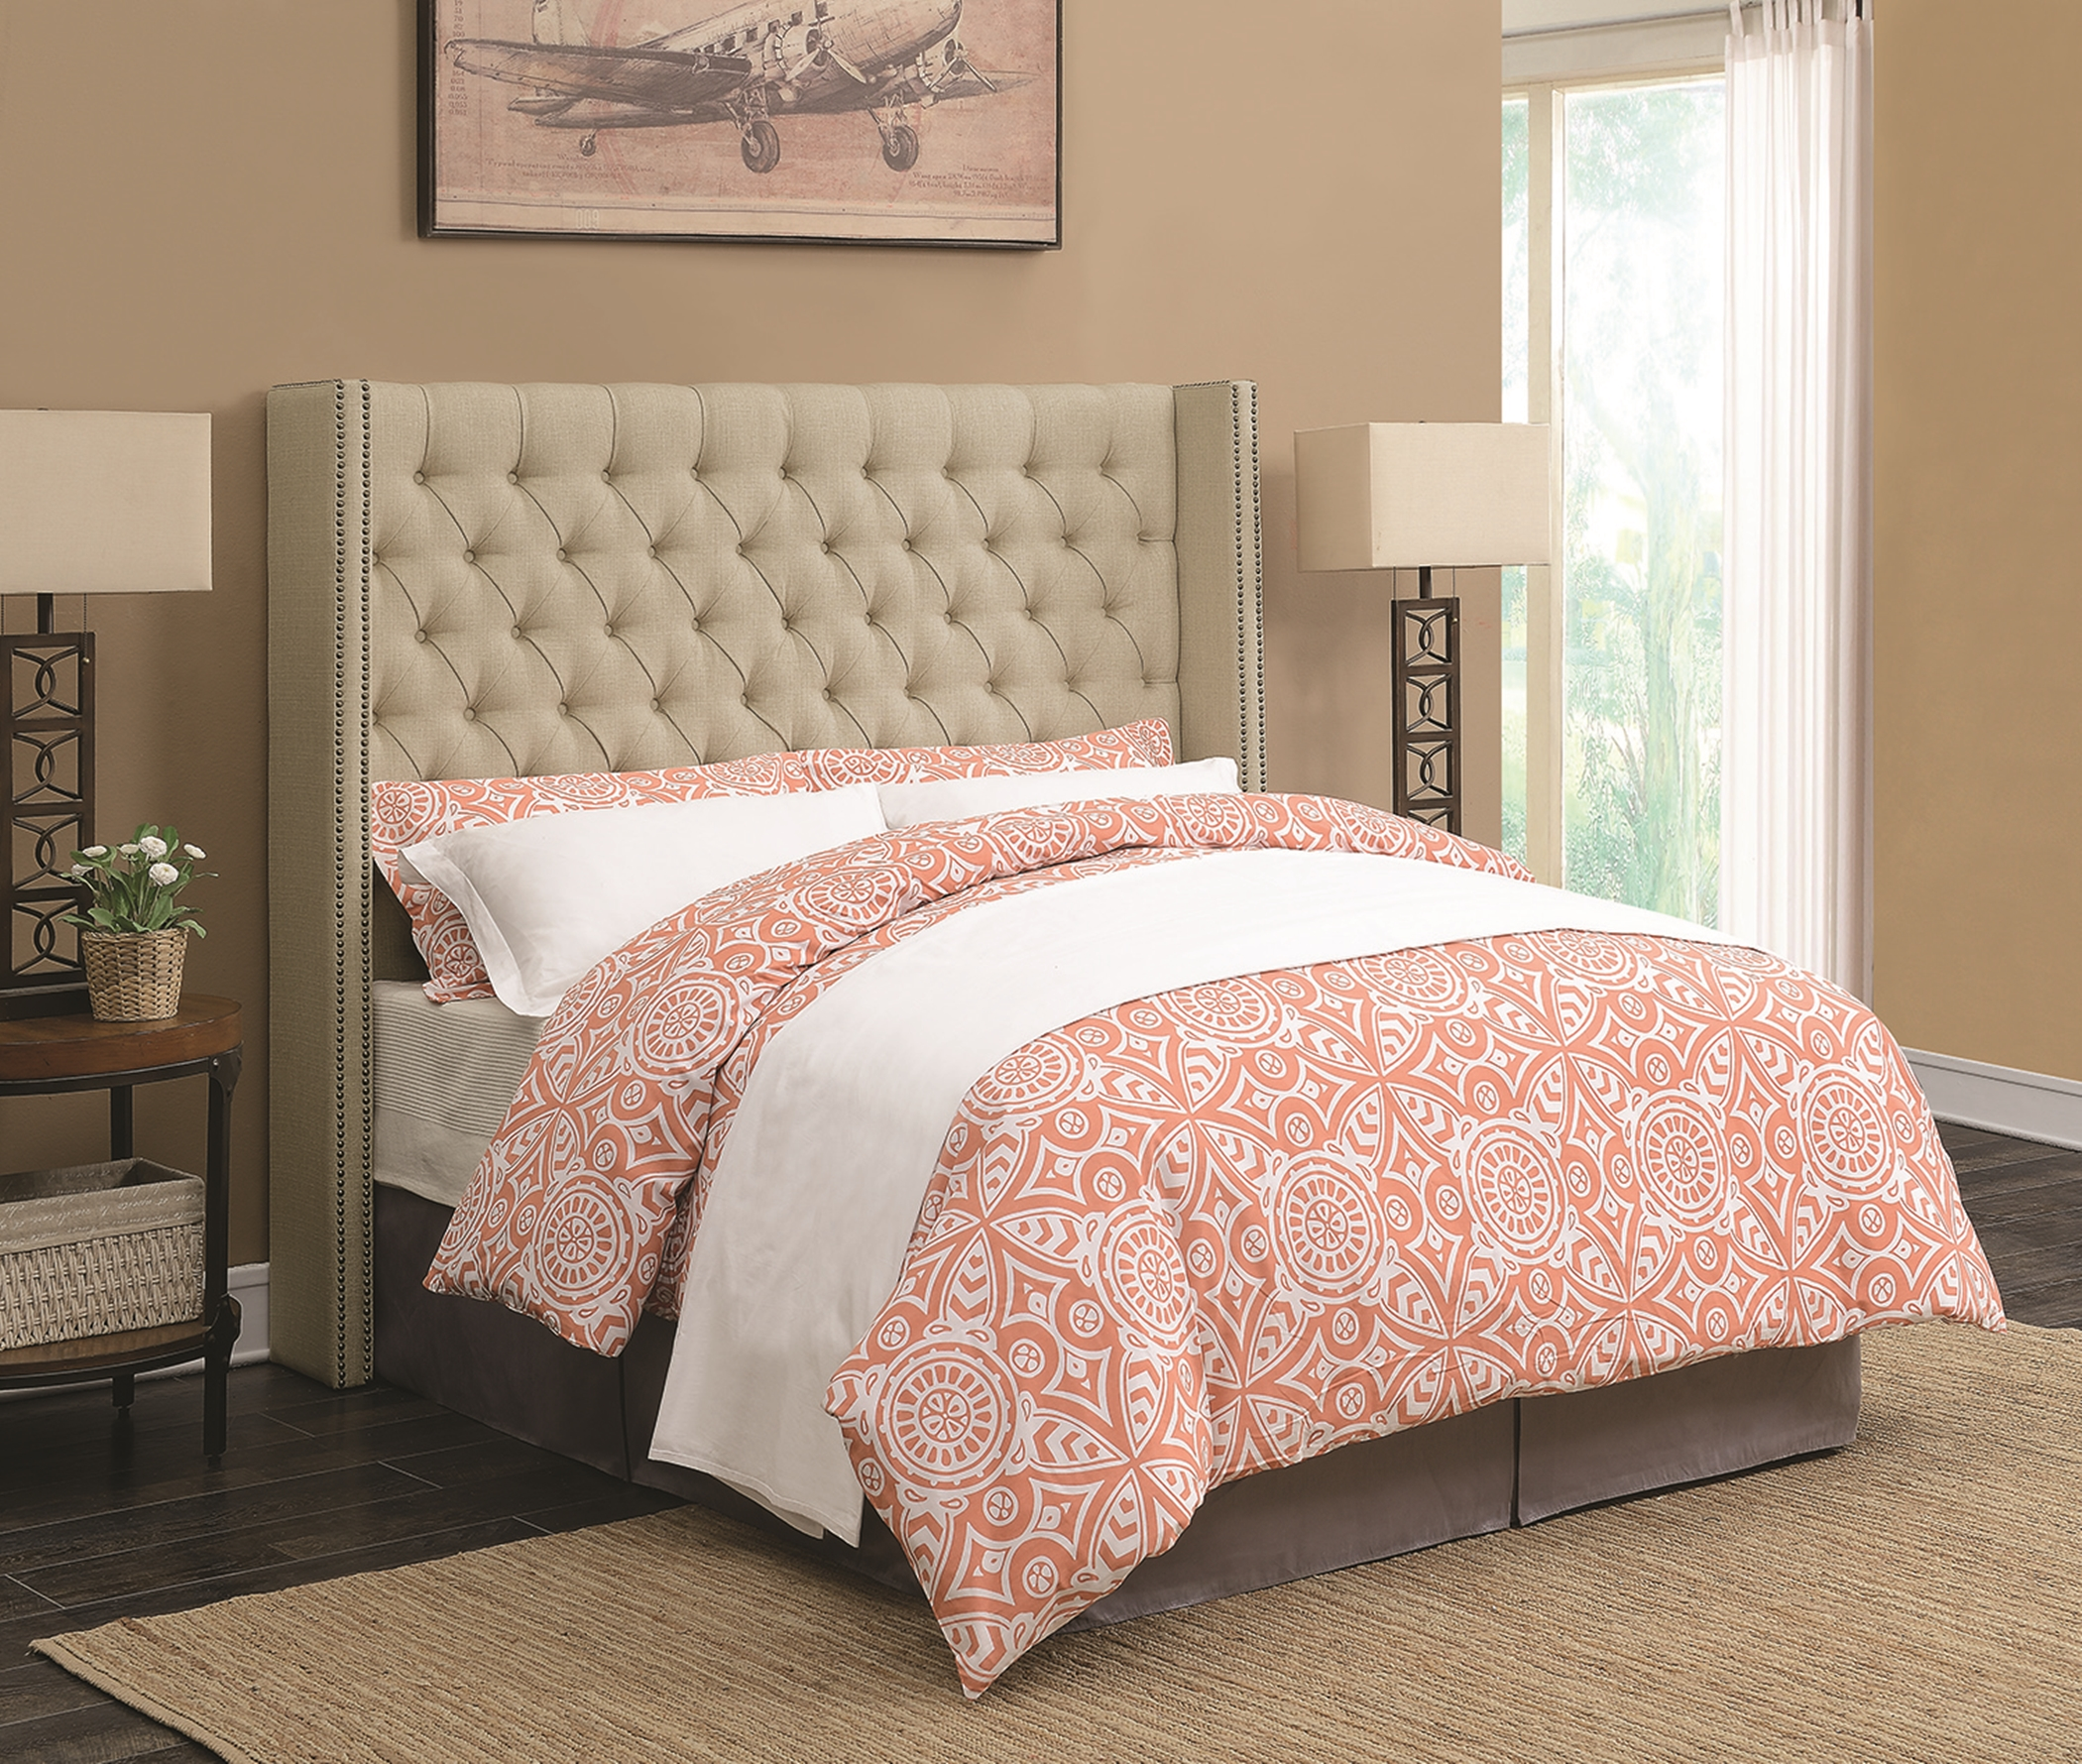 Benicia Beige Upholstered Queen Headboard